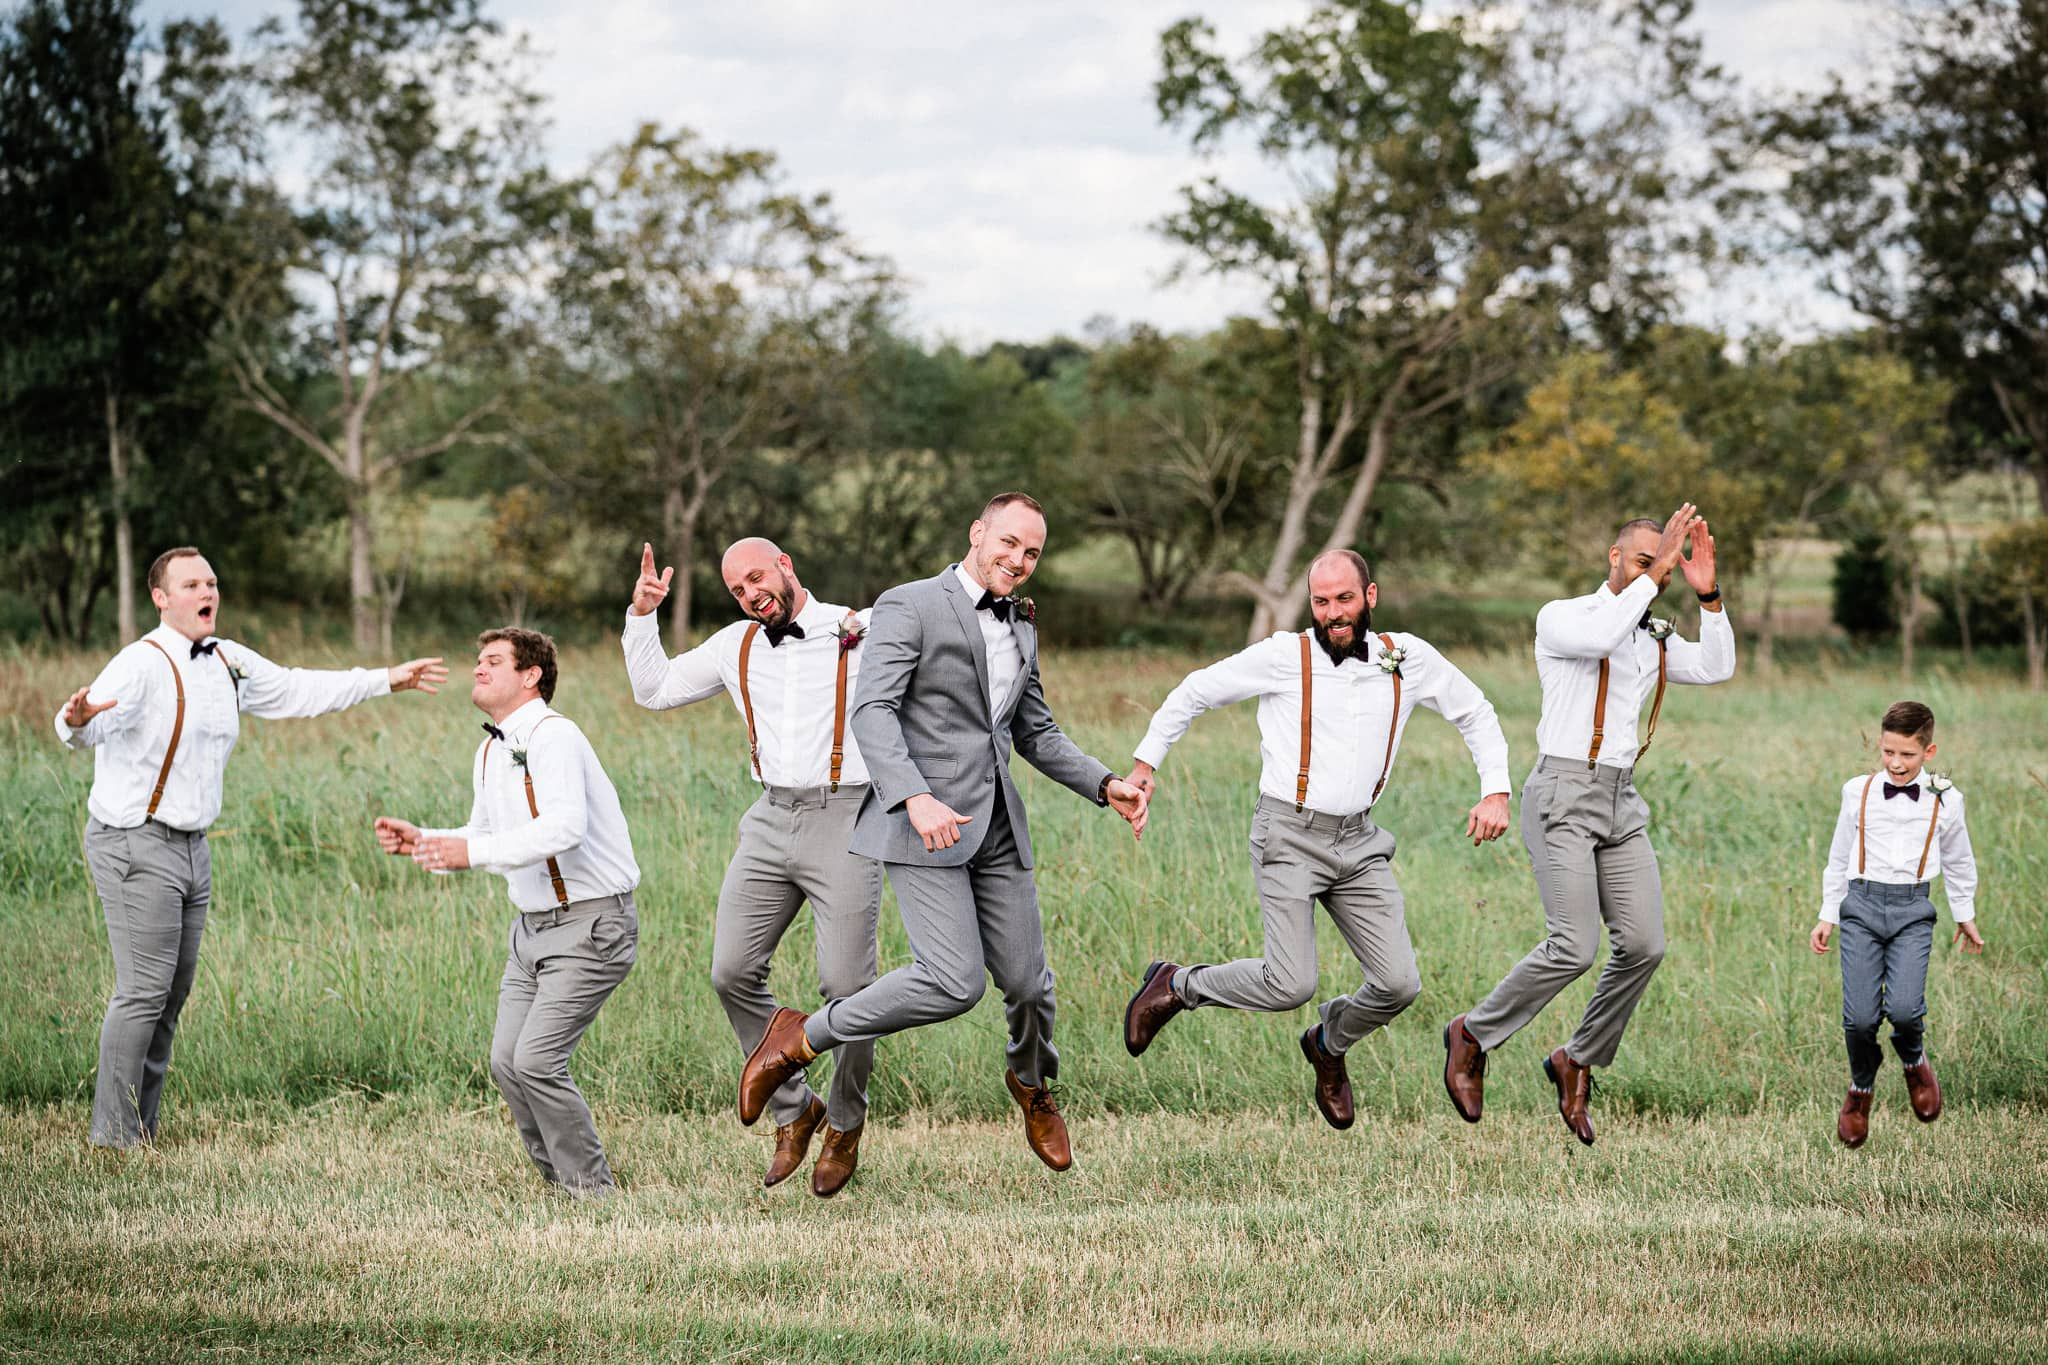 Groom and groomsmen jump together in a field